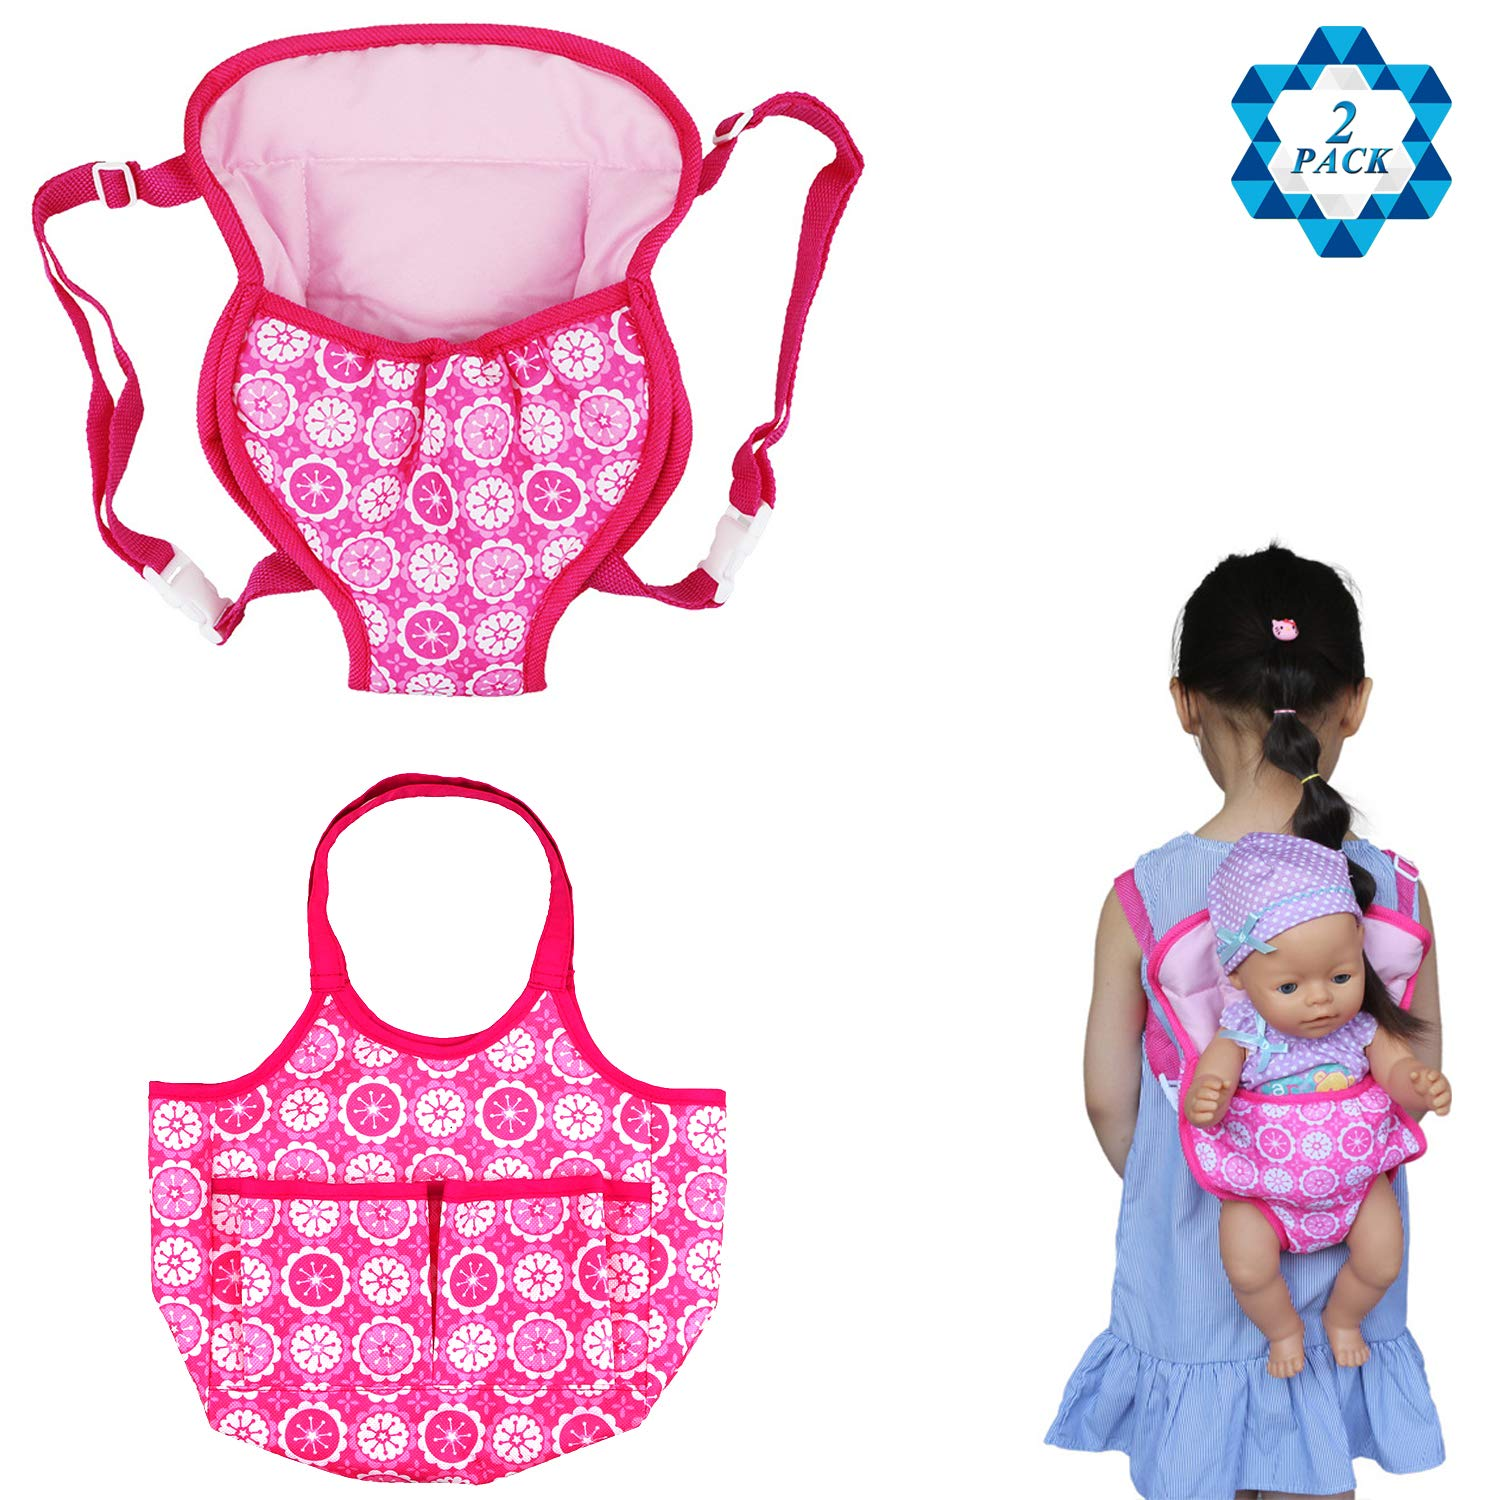 SOTOGO 2 Pack Baby Doll Carrier Doll Backpack Carrier Doll Tote Bag Doll Diaper Bag 15 to 18 inch Dolls